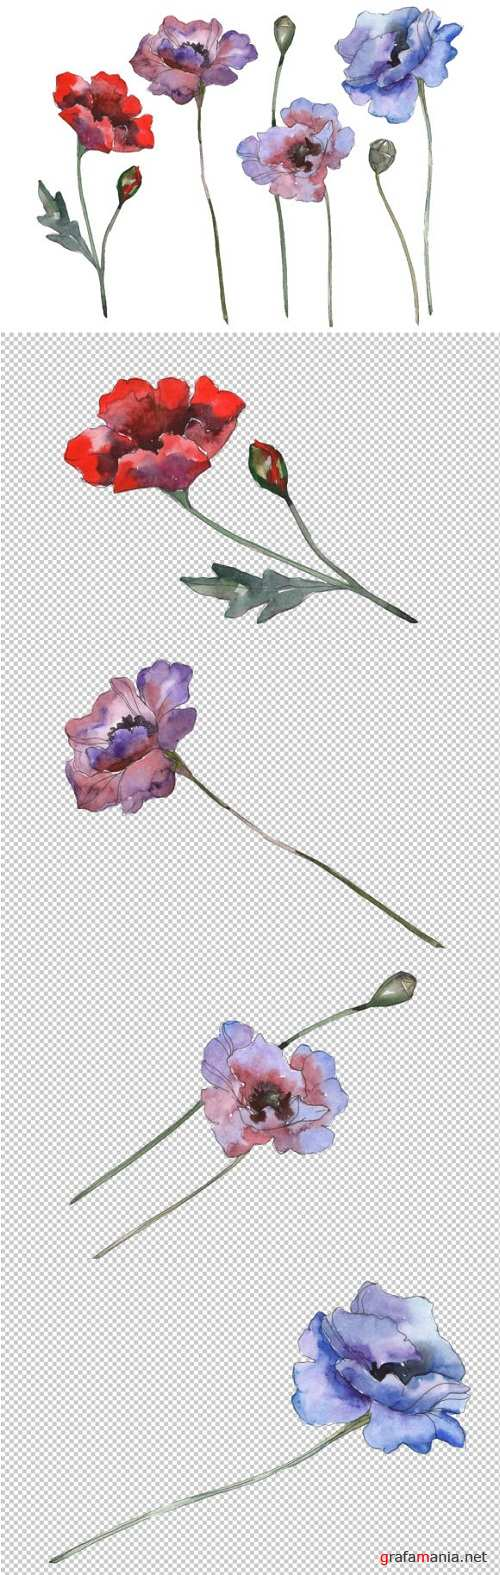 Poppy 1 Watercolor png - 229877